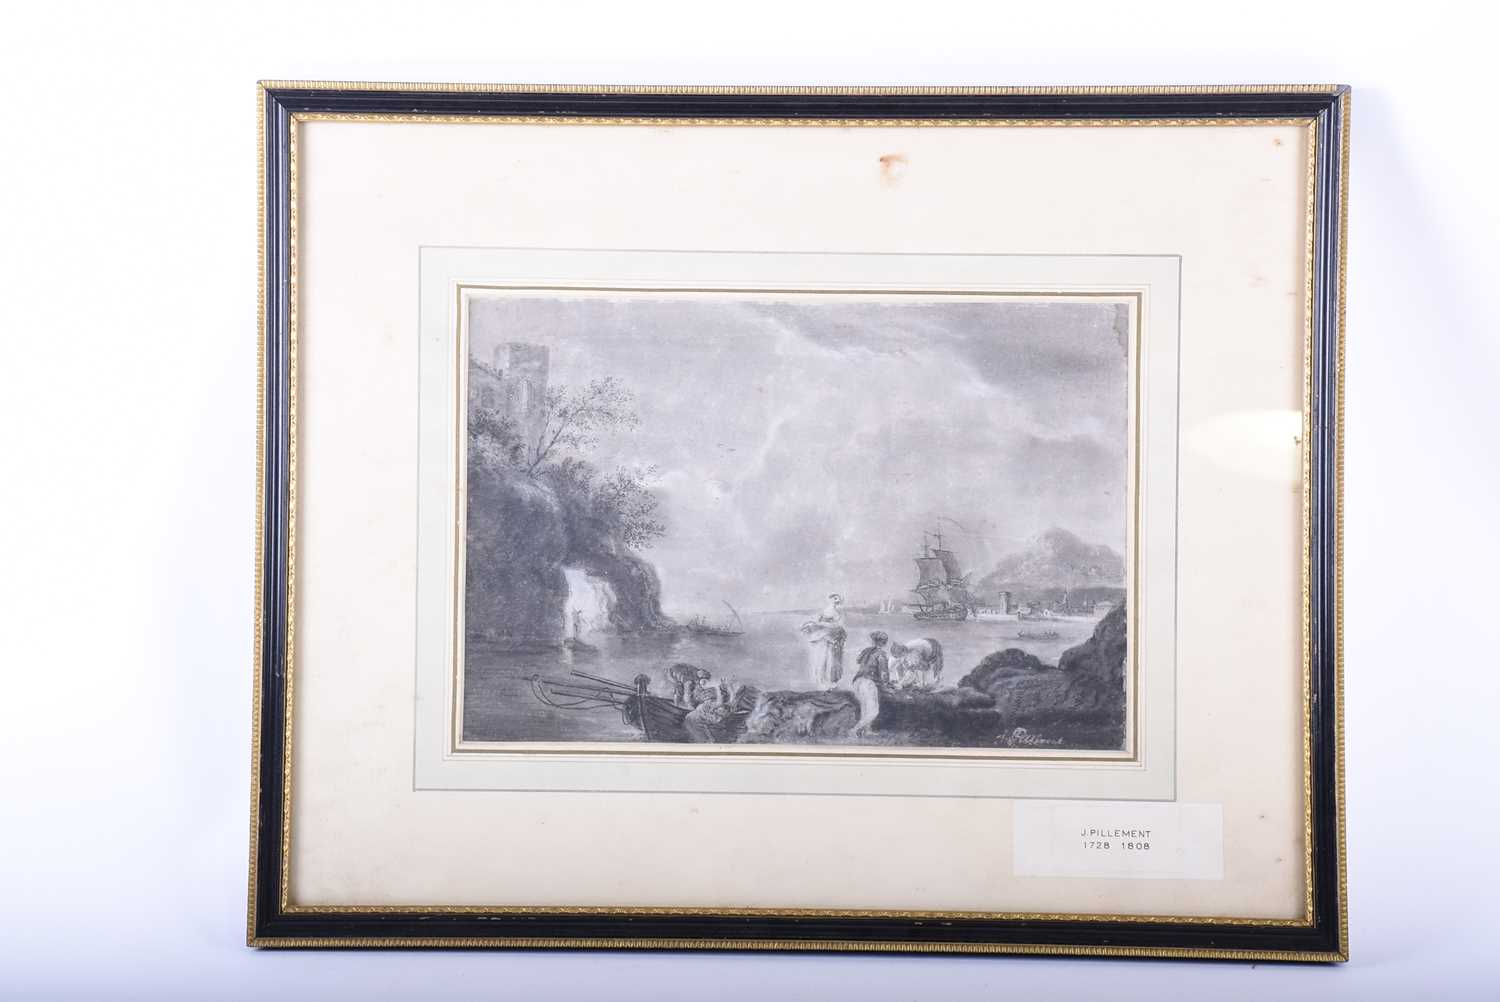 Lot 14-Attributed to Jean Pillement (1728 - 1808),...